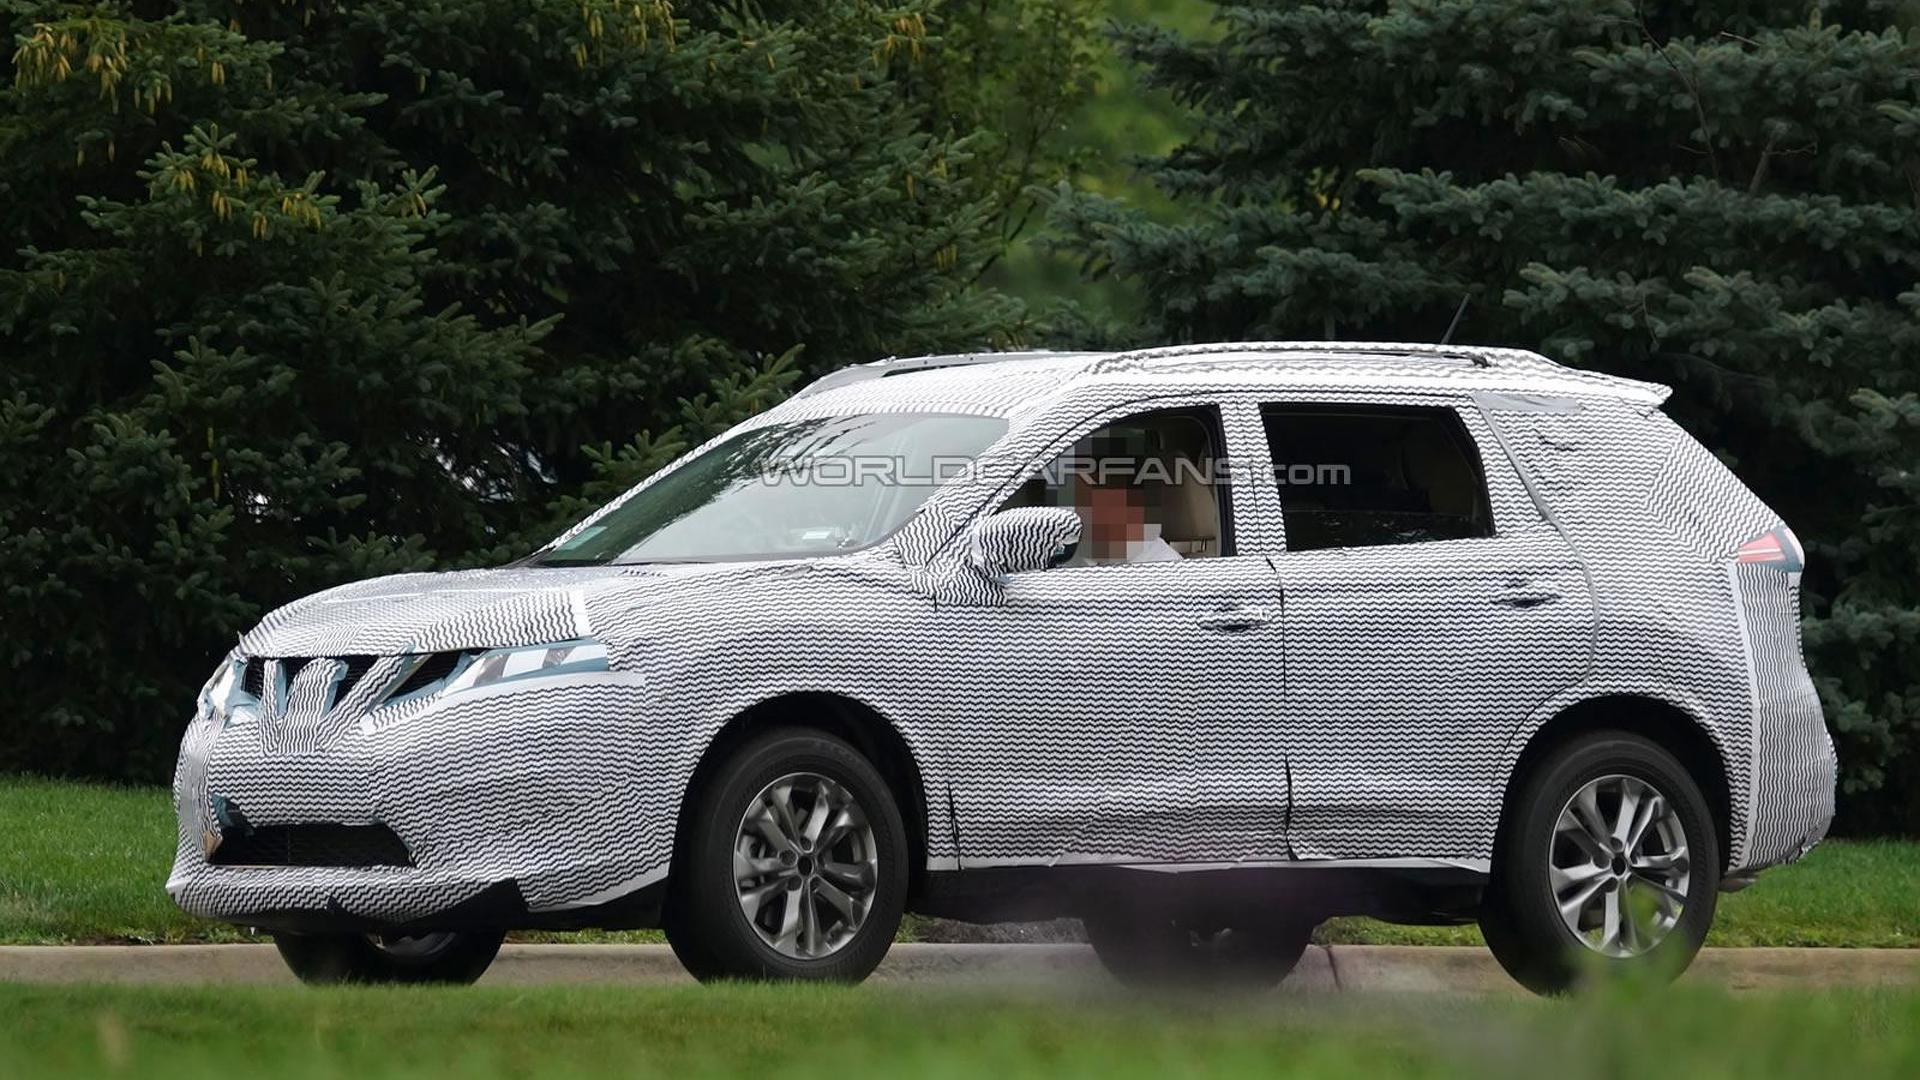 2015 Nissan X-Trail (Rogue) spied testing in United States